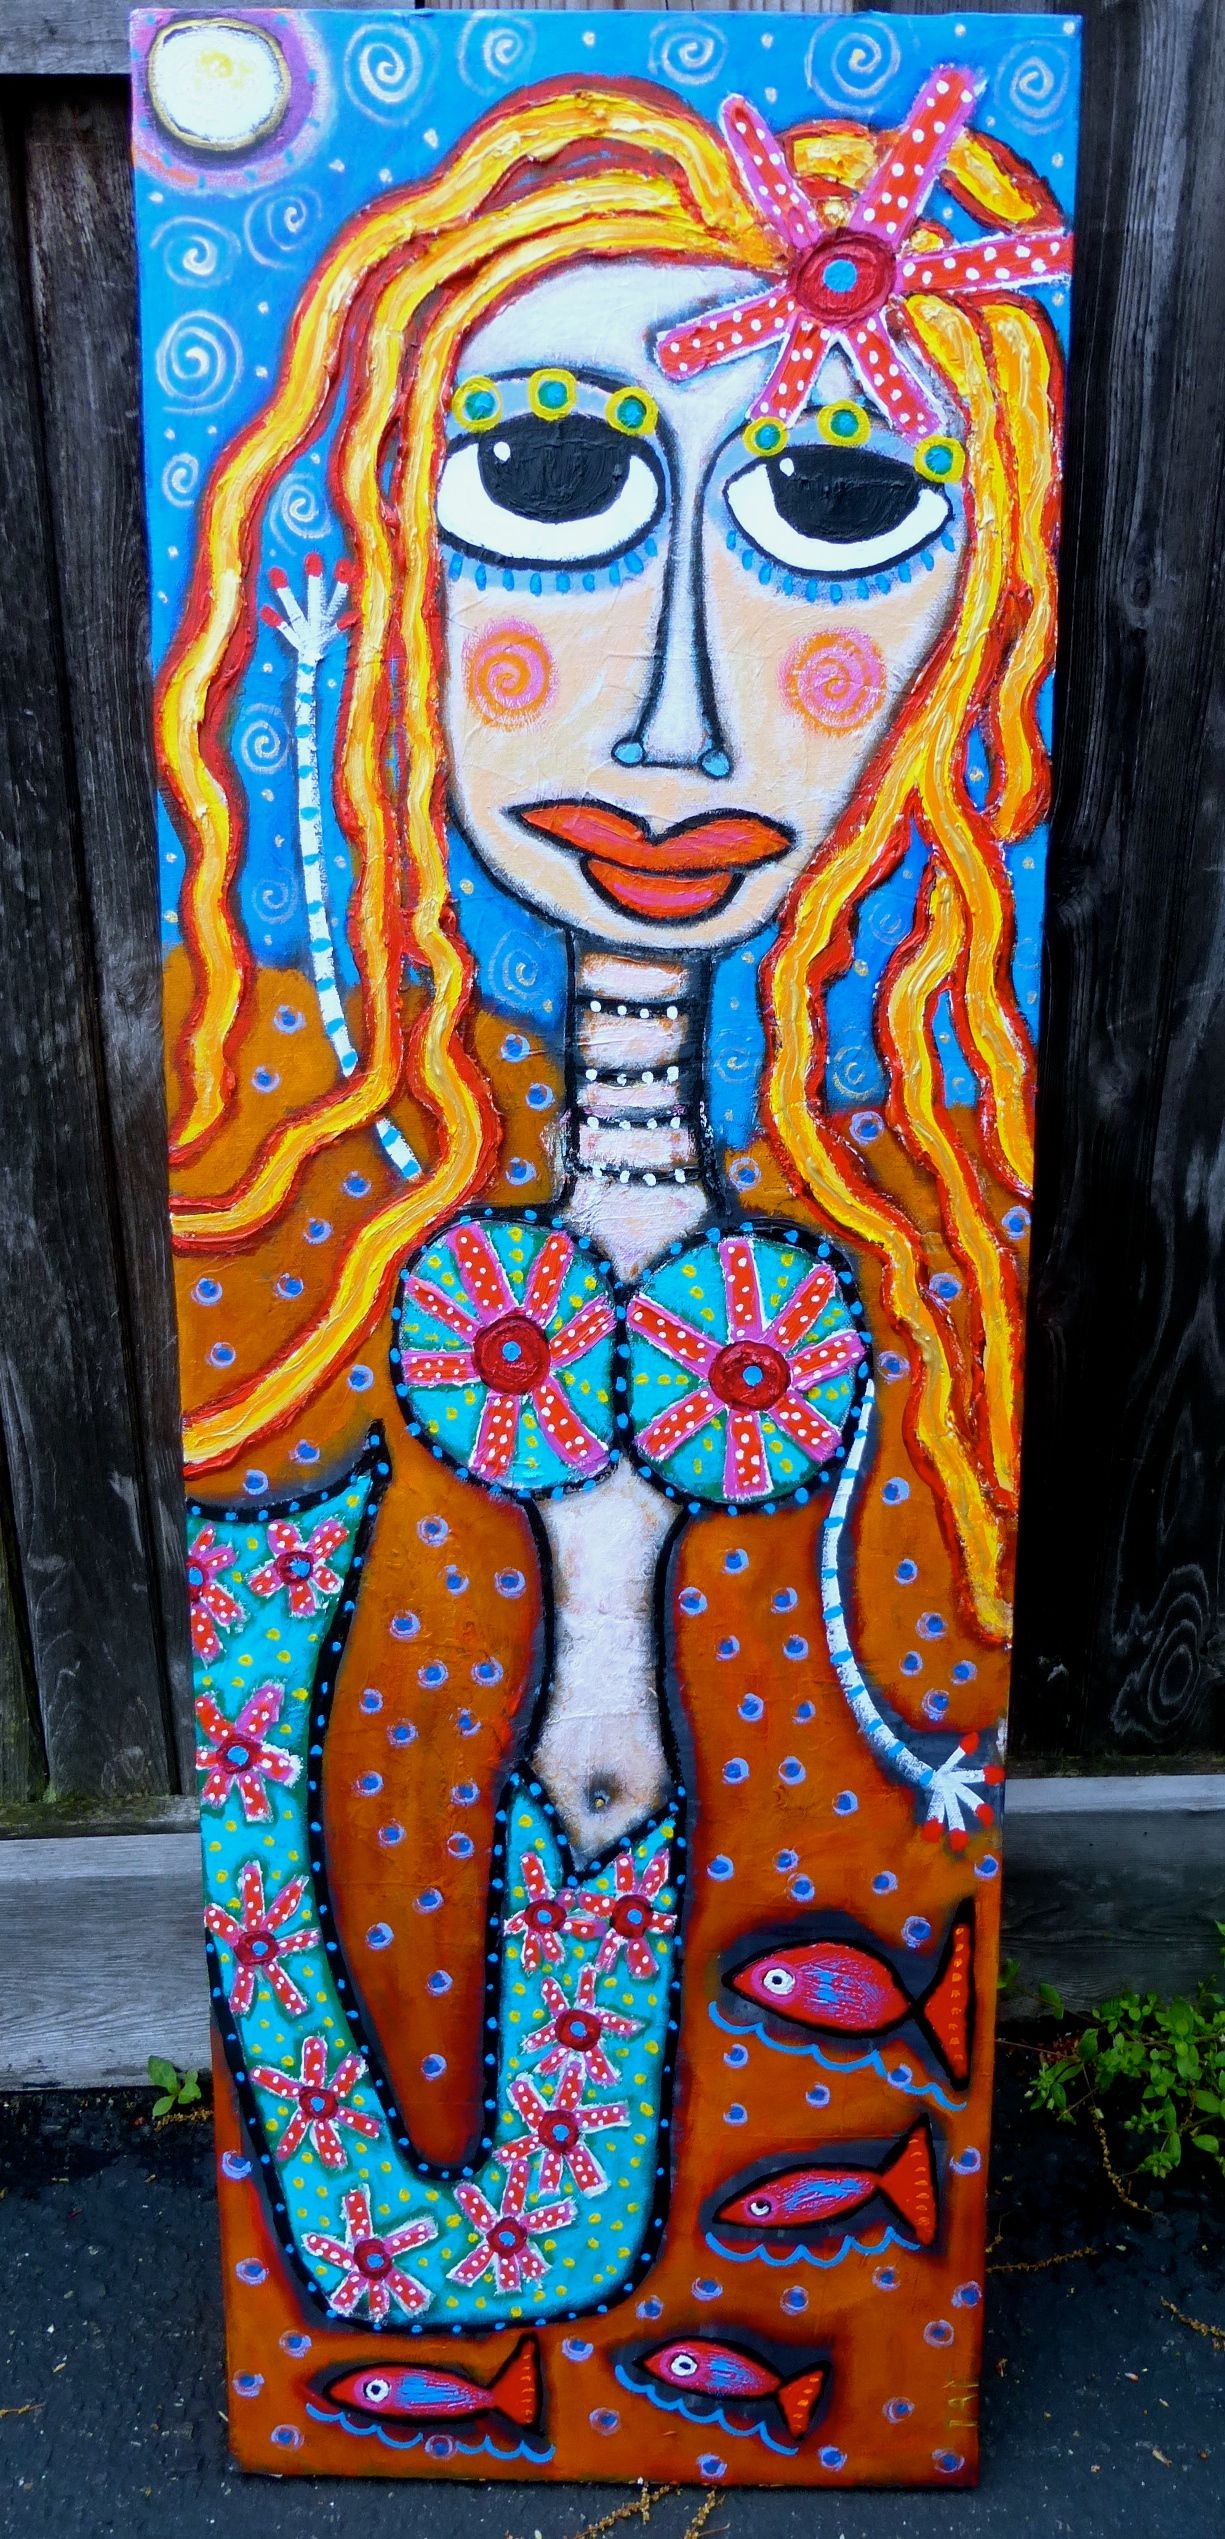 Reaching for the moon a funky mermaid painting on canvas by tracey